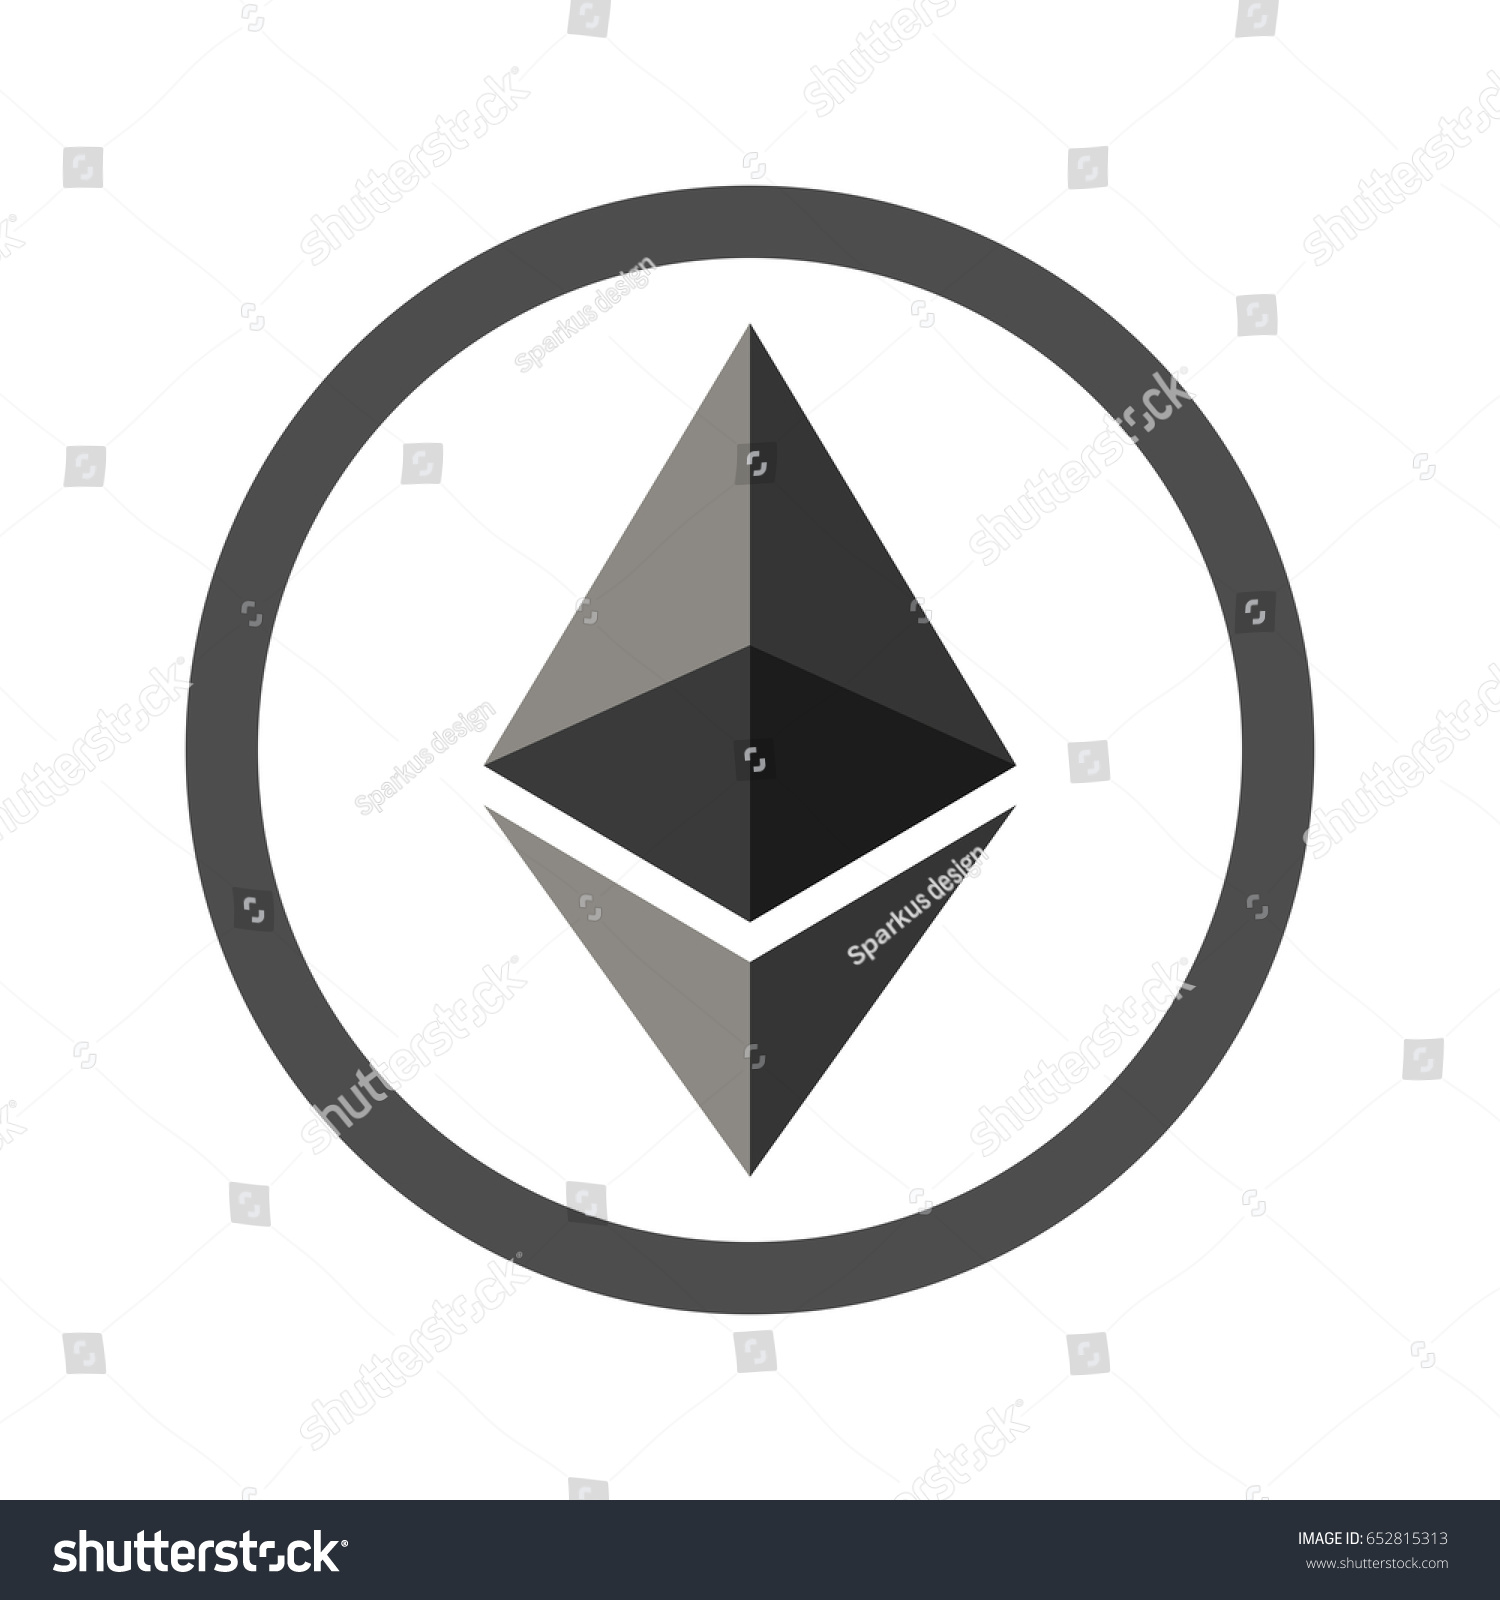 How To Protect Cryptocurrency What Is The Stock Symbol For Ethereum